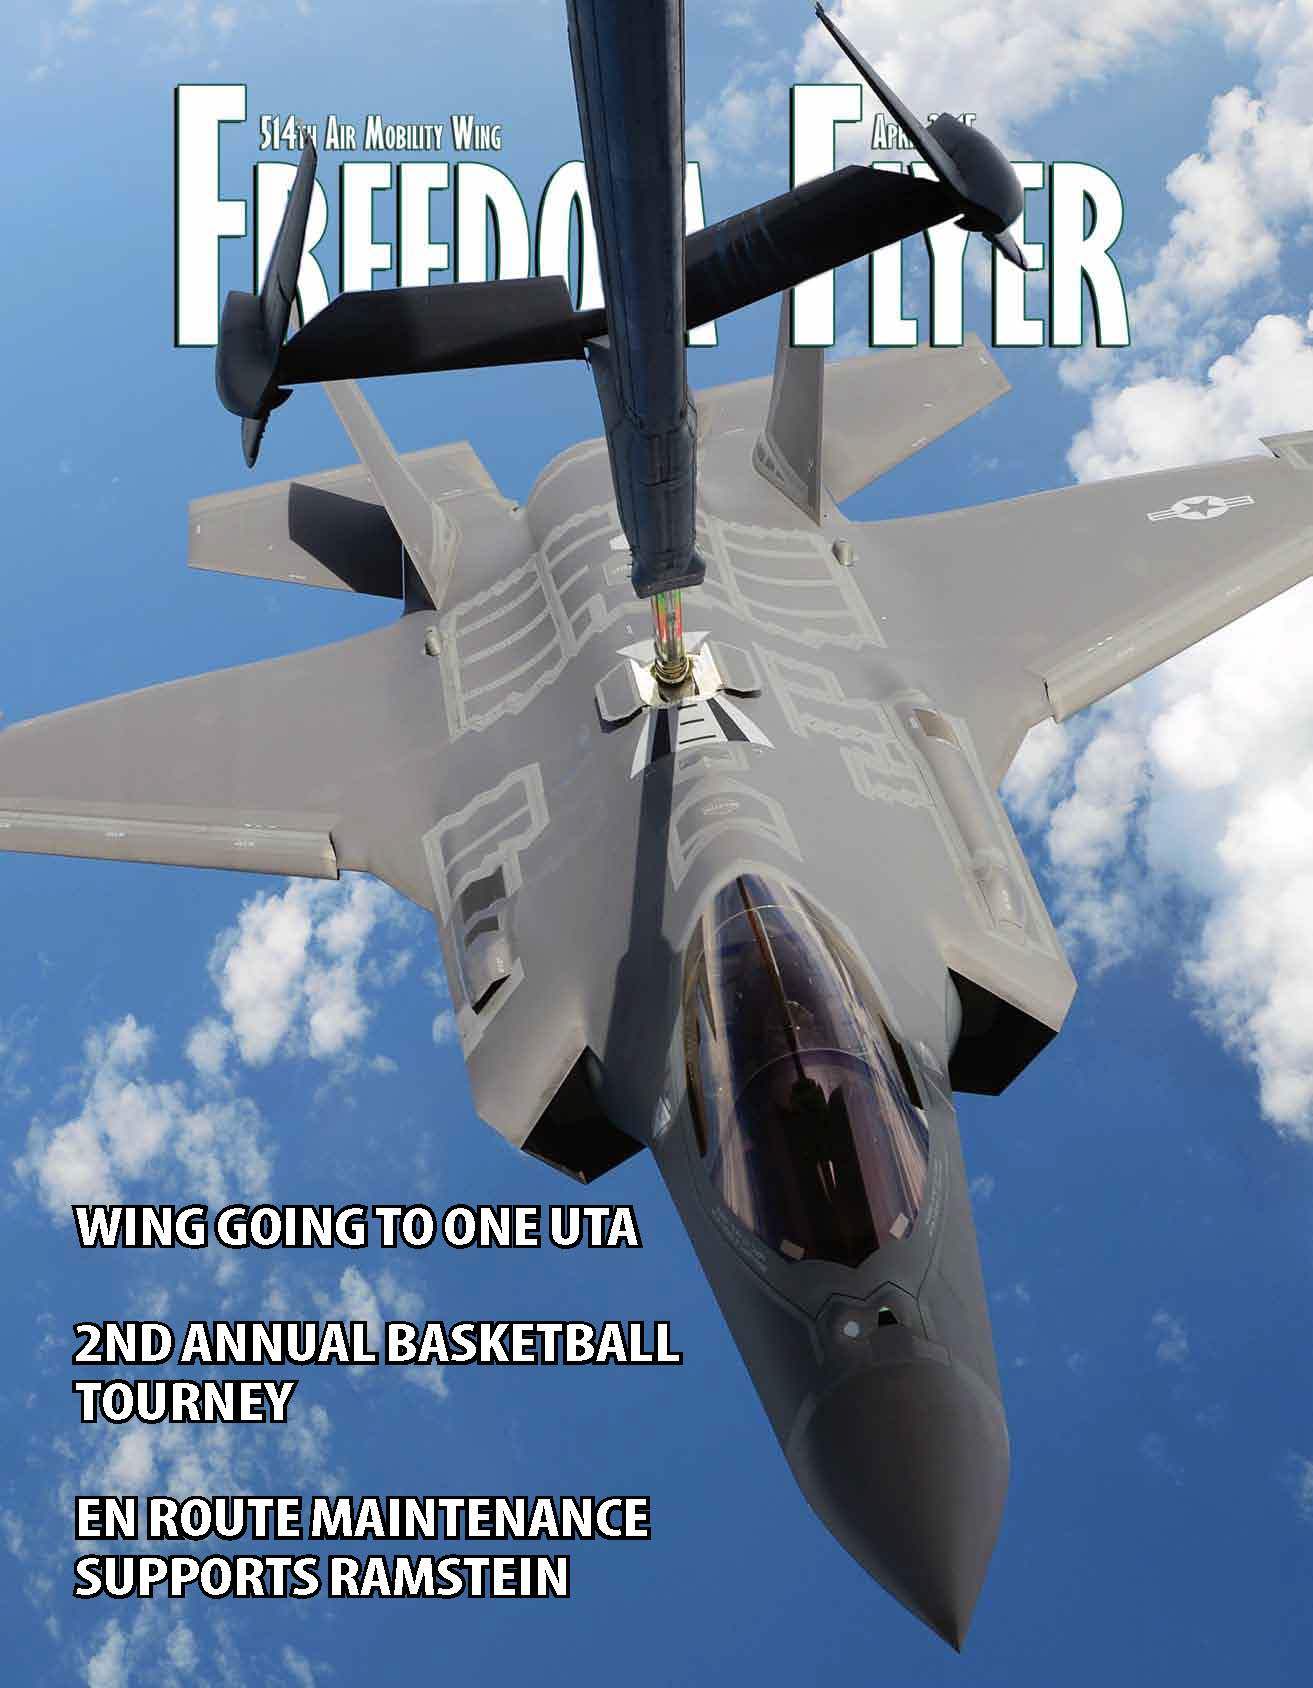 Freedom Flyer - April 2015